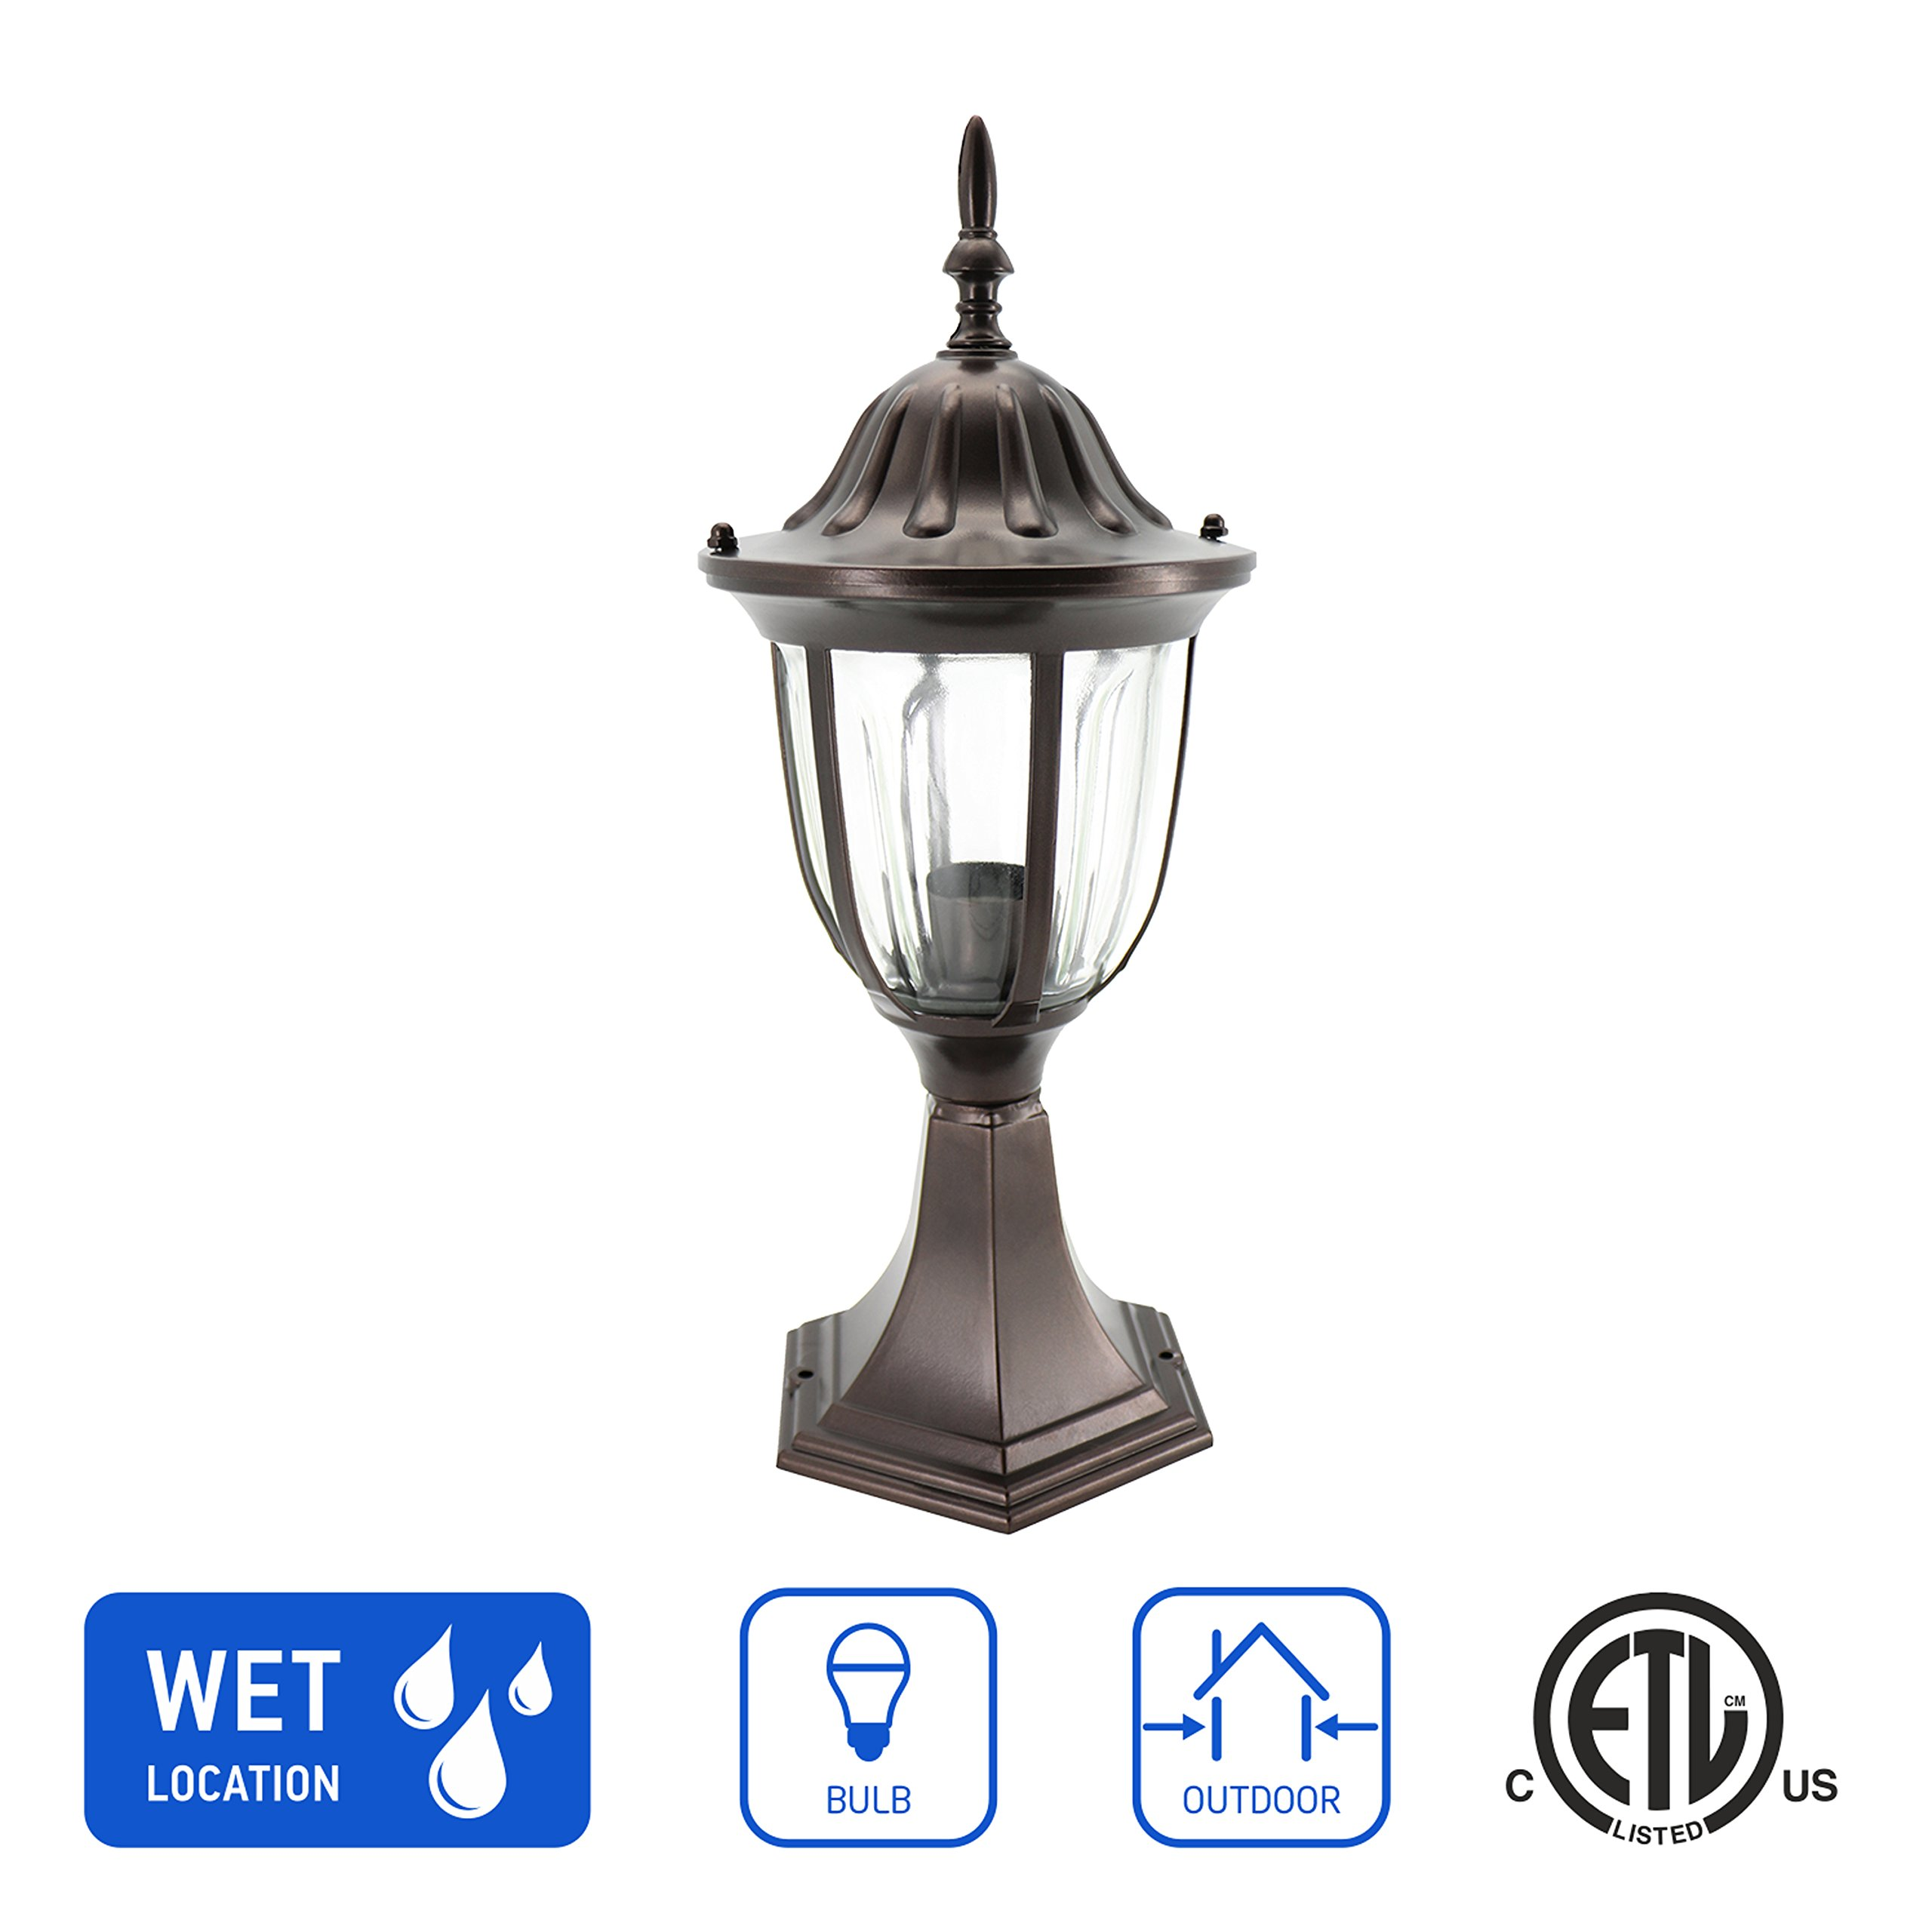 IN HOME 1-Light Outdoor Garden Post Lantern L03 Lighting Fixture, Traditional Post Lamp Patio with One E26 Base, Water-Proof, Bronze Cast Aluminum Housing, Clear Glass Panels, ETL Listed by IN HOME (Image #1)